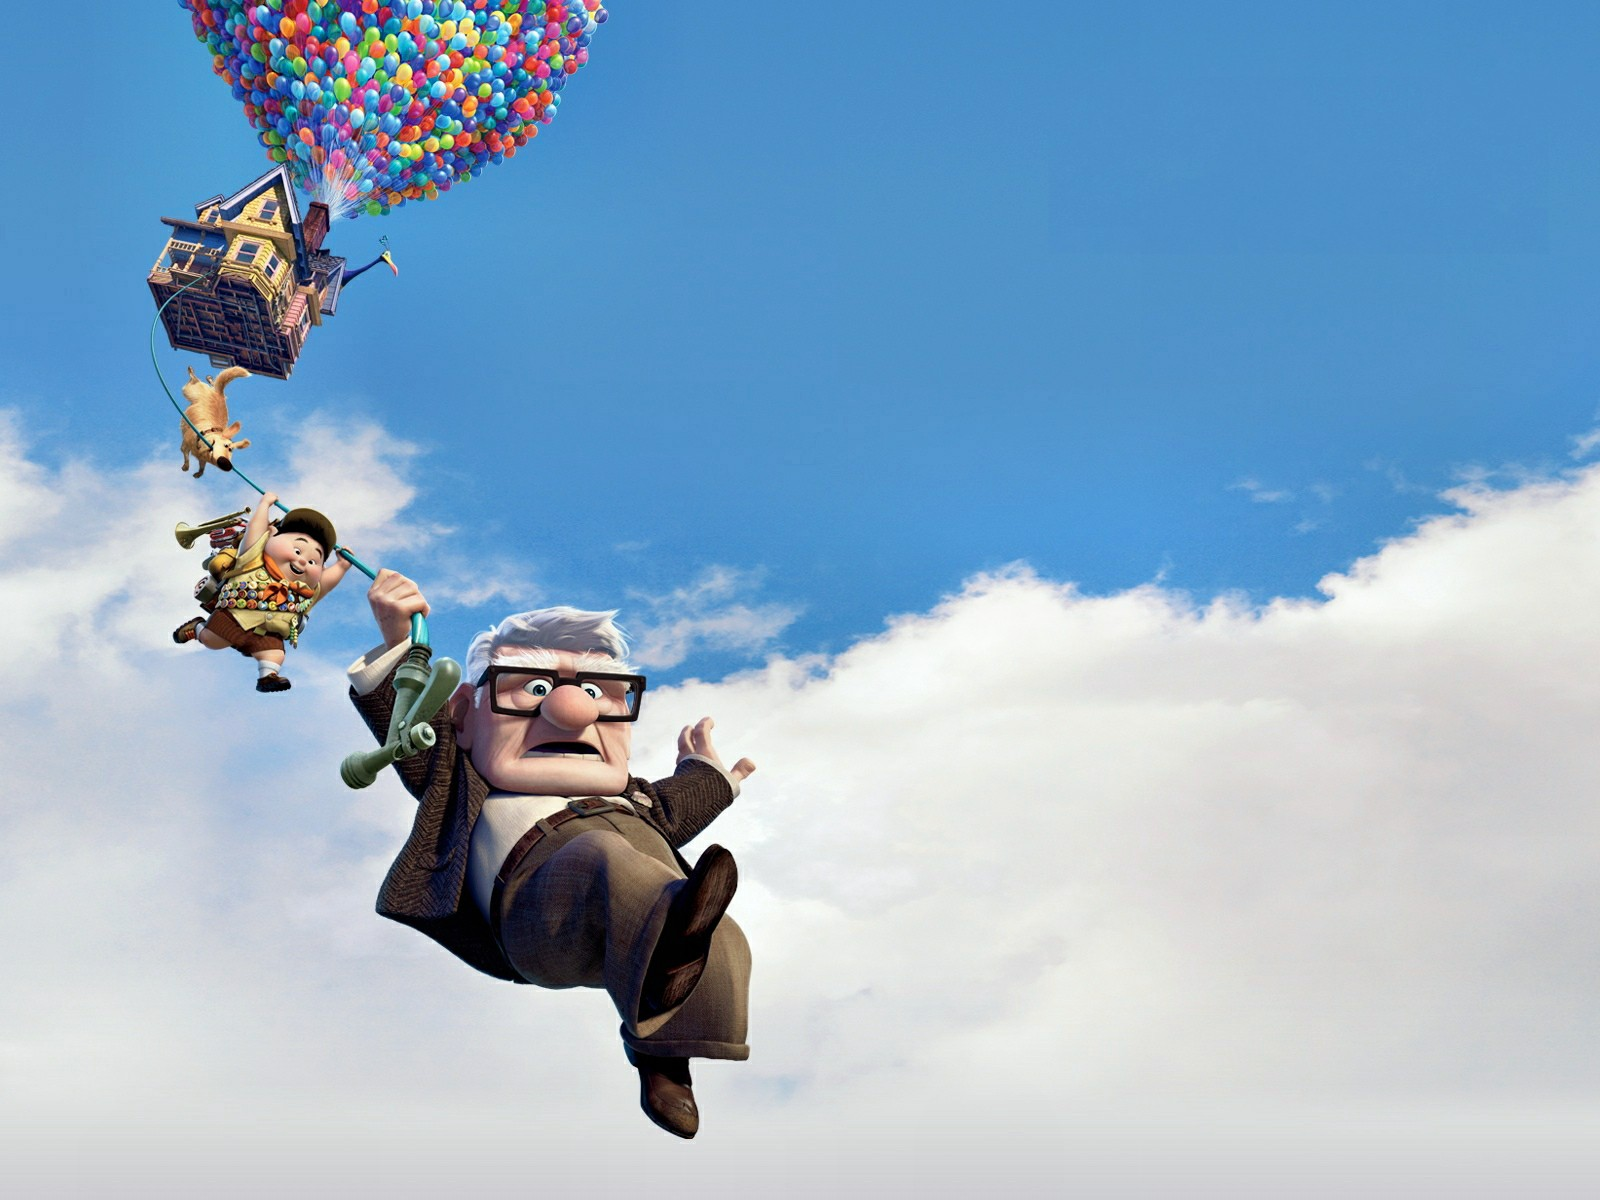 21 Awesome Air Balloon Wallpapers Gambar Lucu Aneh Dan Unik